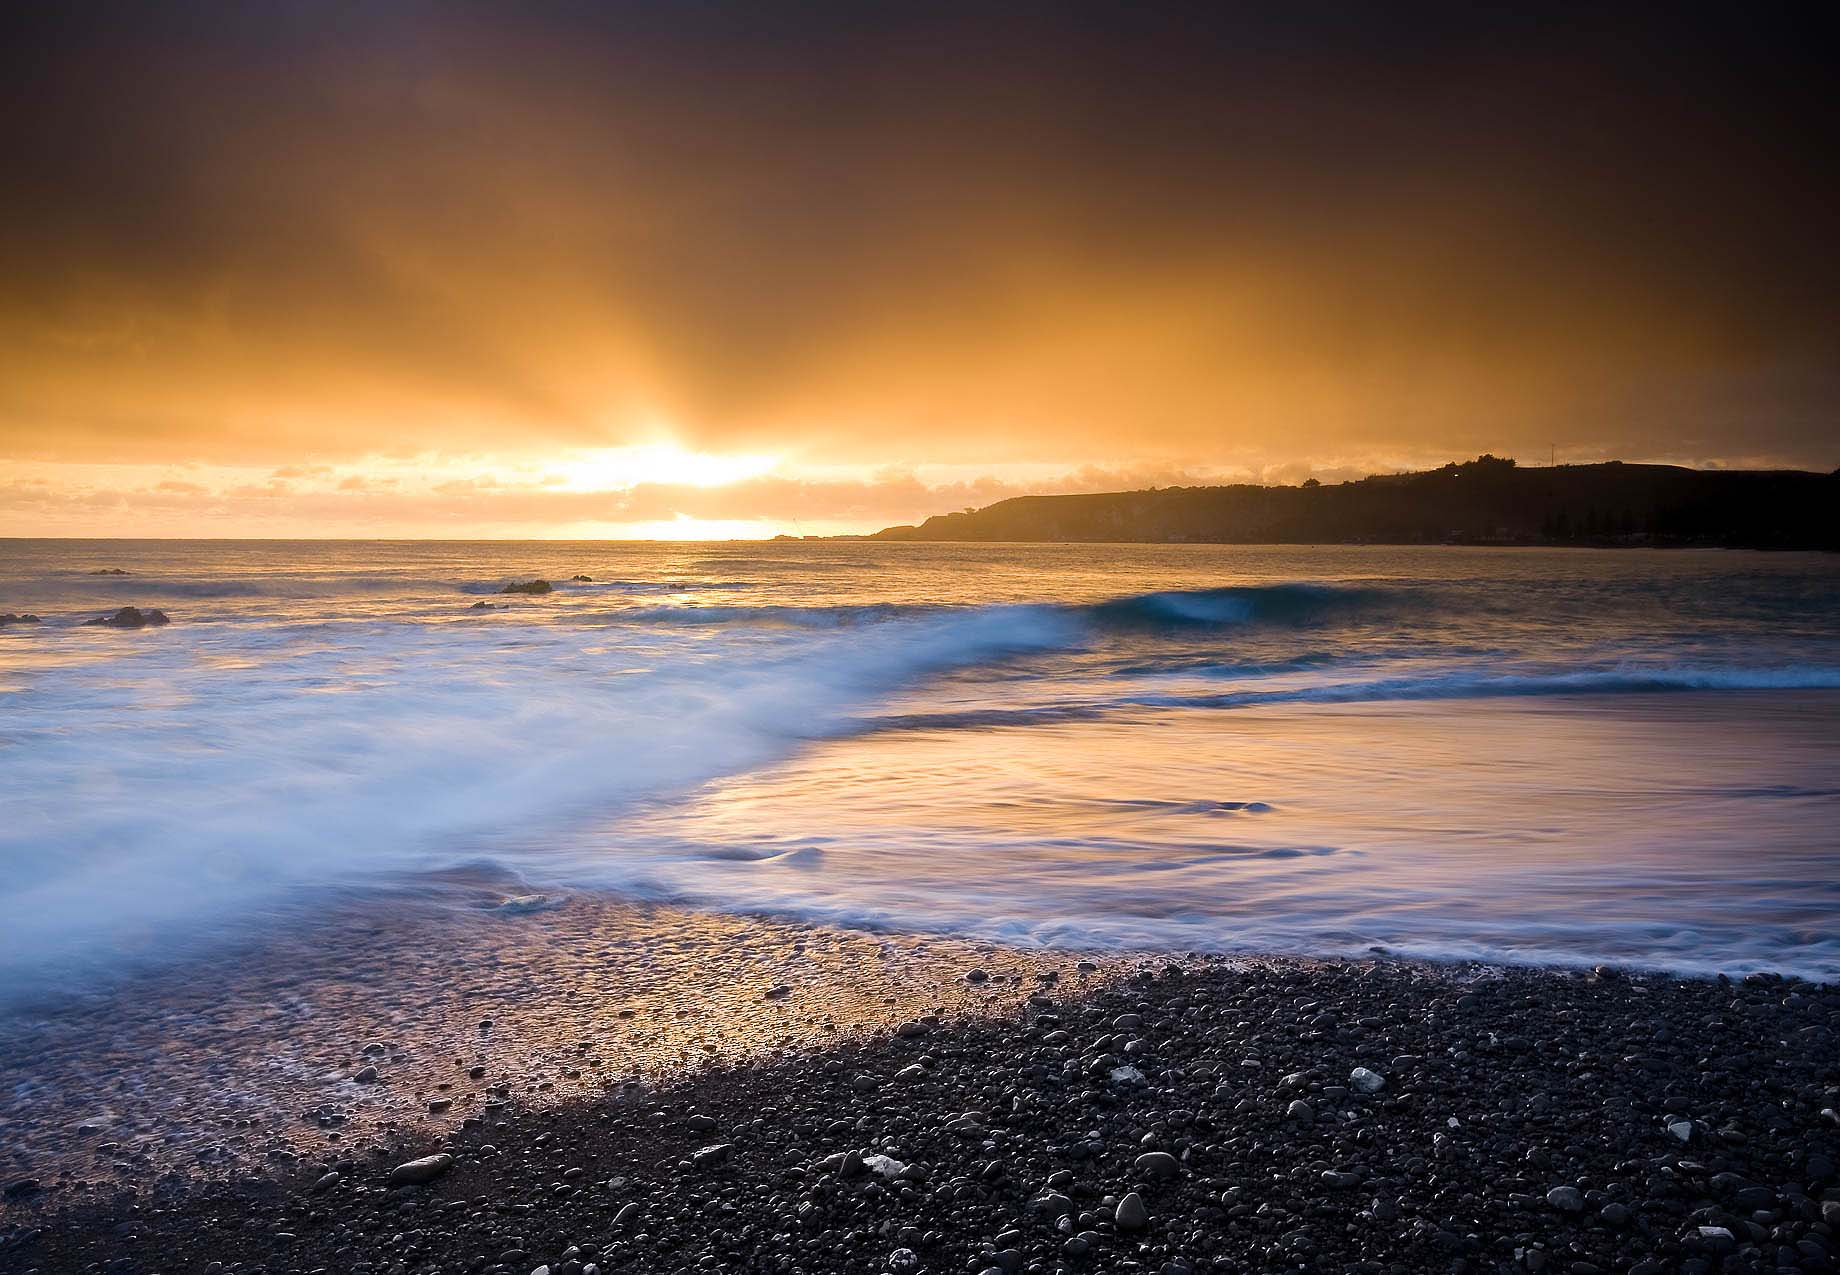 Sunset-Goochs-Beach-Kaikoura-South-Island-New-Zealand-Landscape